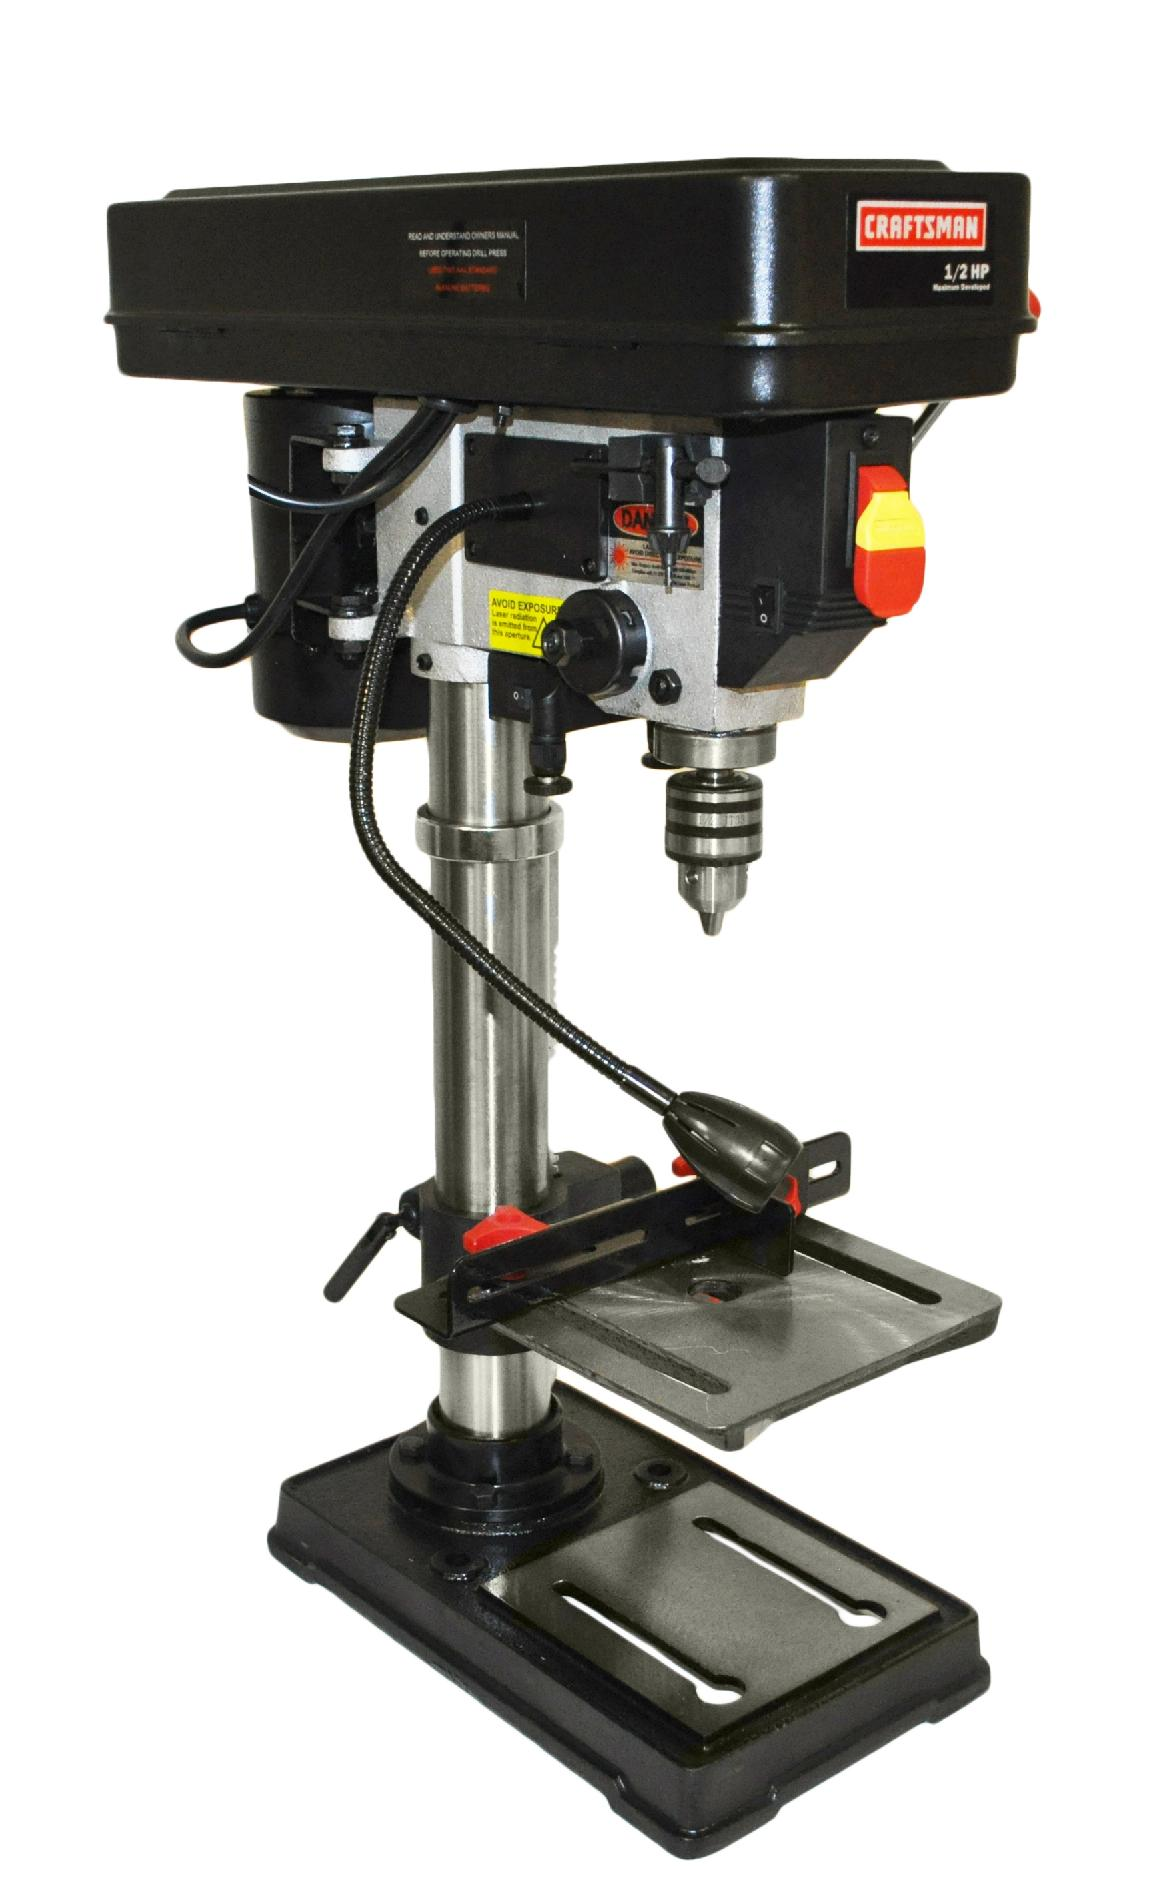 10 Bench Drill Press With Laser A Perfect Hole In One Try At Sears Drill Press Drill Presses Drill